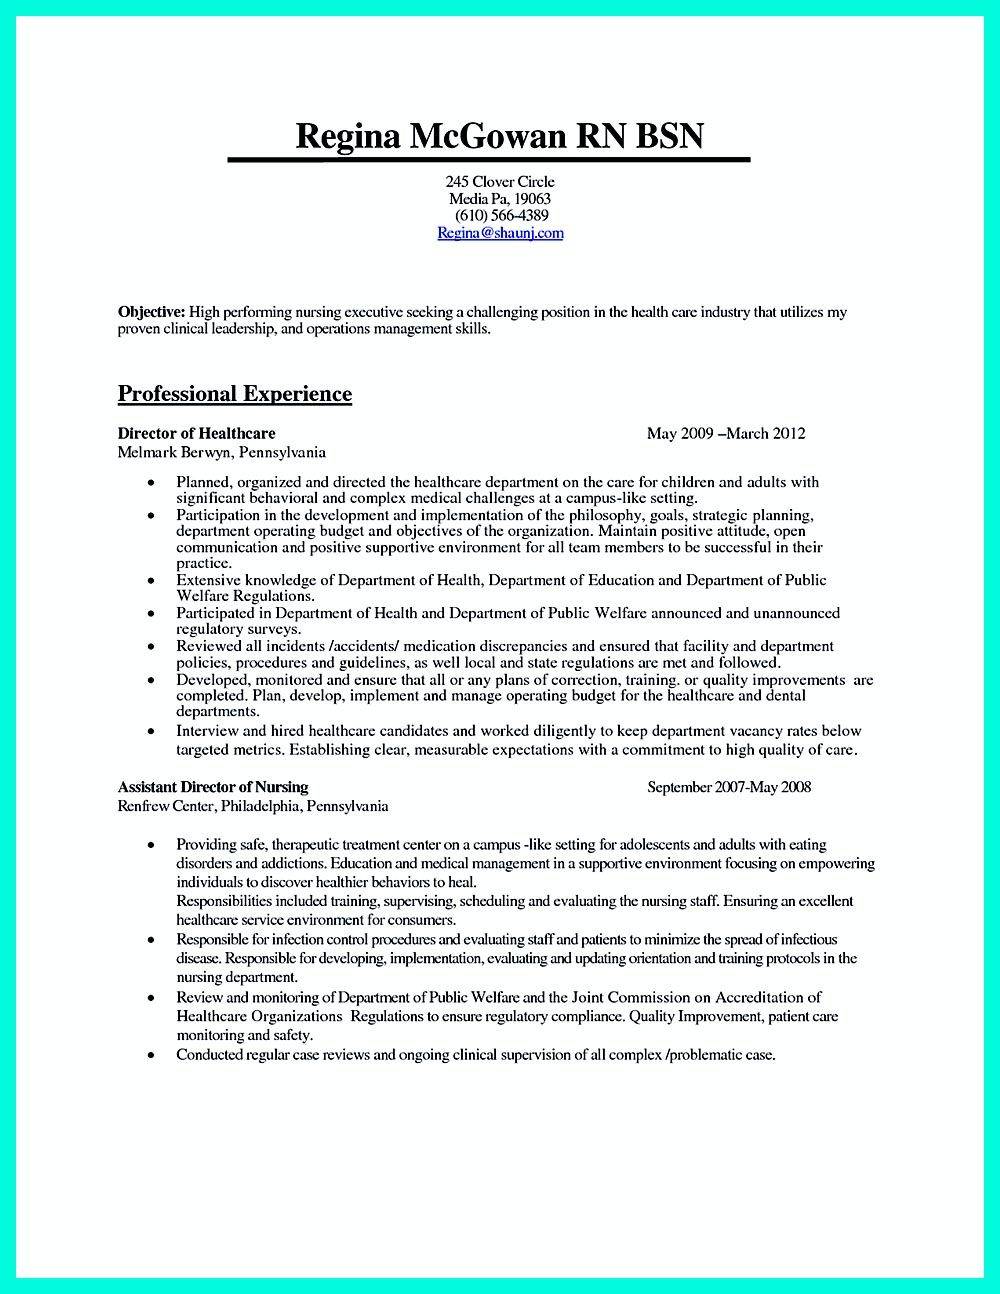 Nursing School Resume Some Samples Of Crna Resume Here Are Useful For You Who Want To